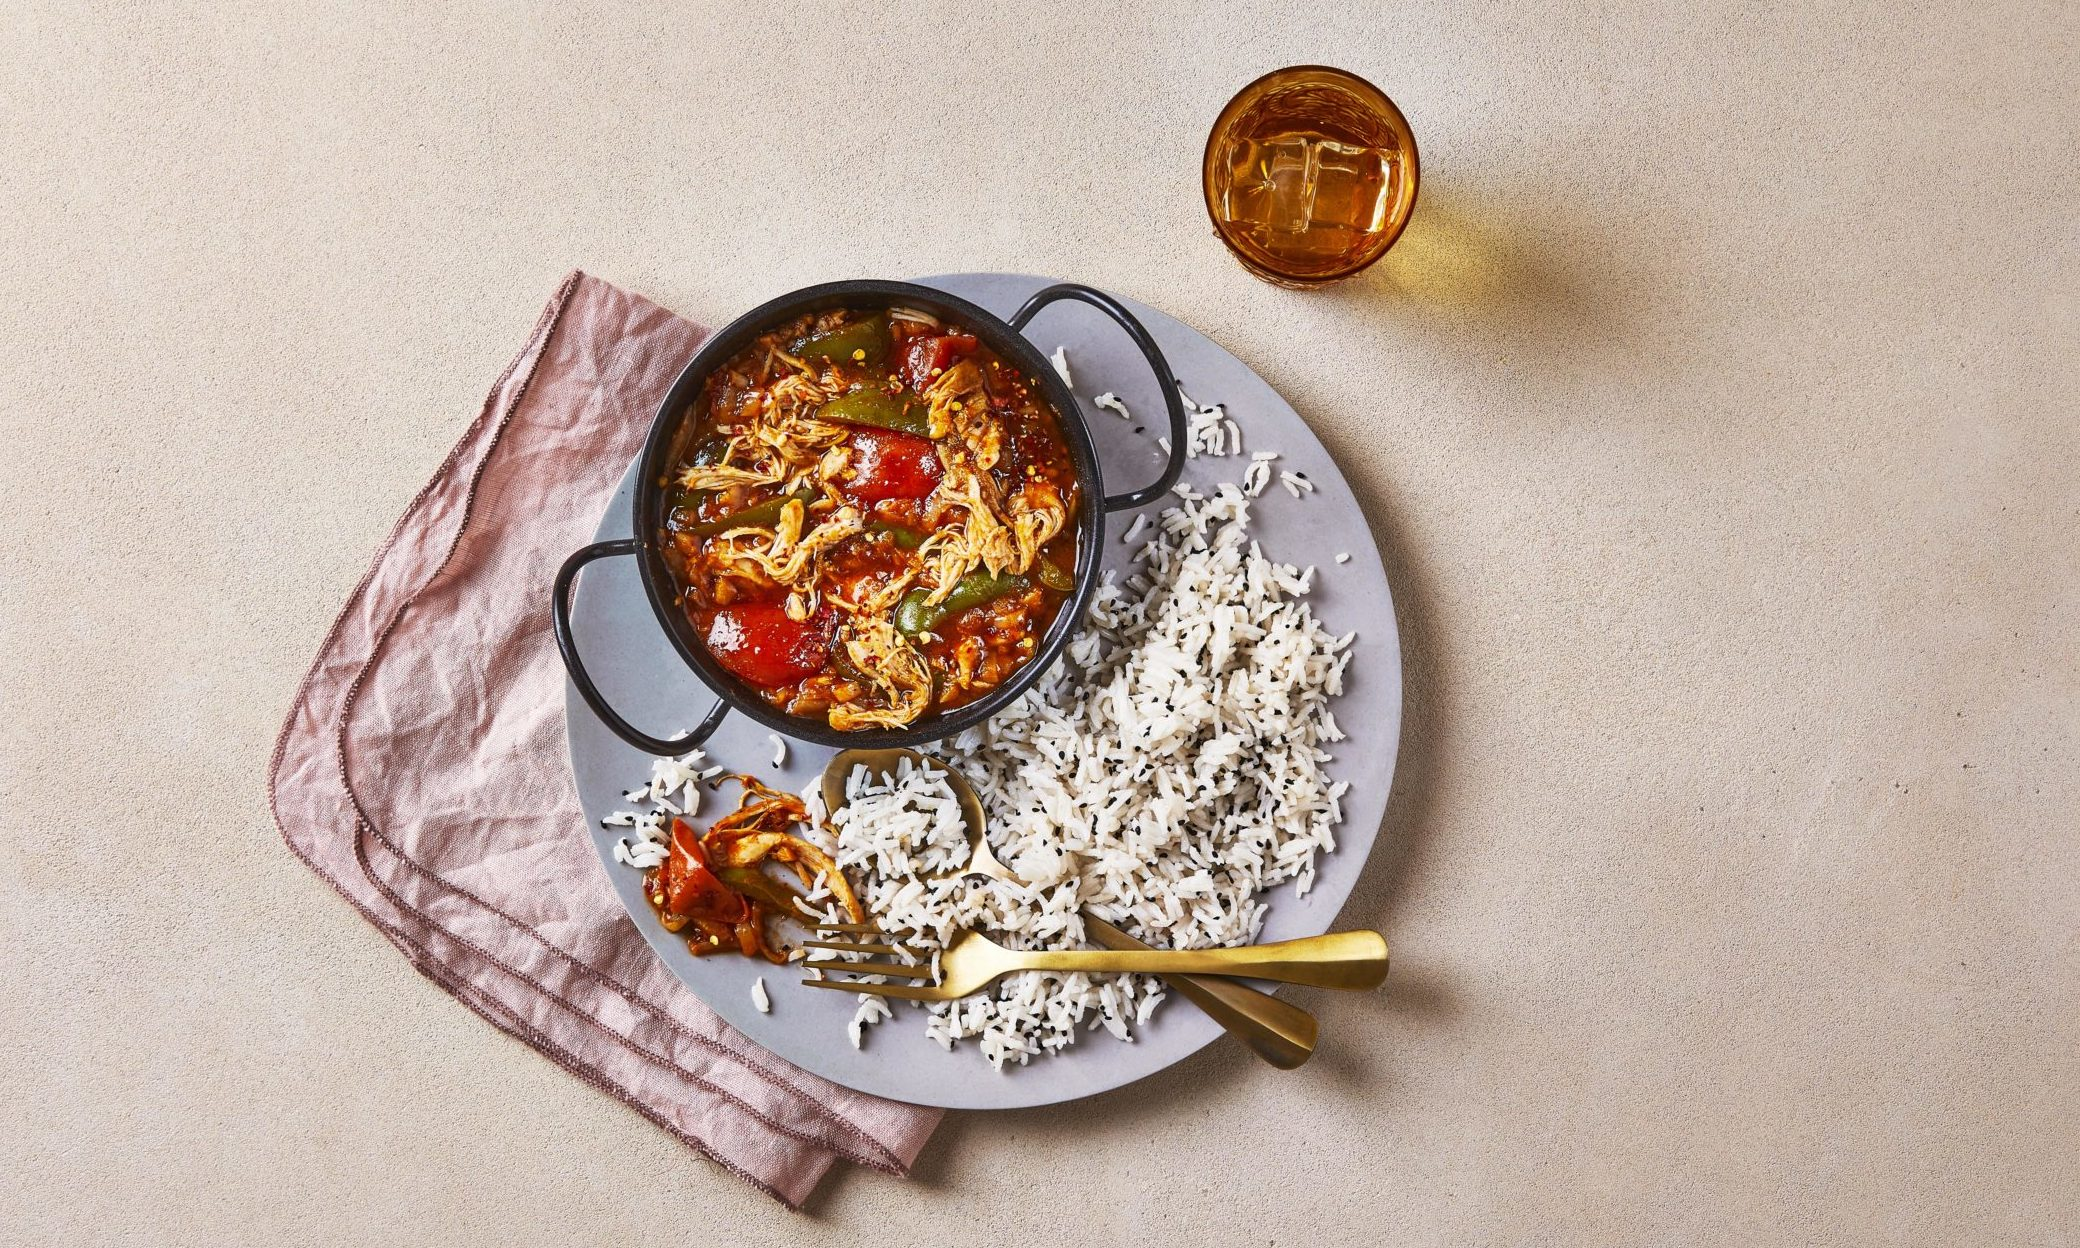 Mouth-watering chicken jalfrezi with fragrant basmati rice.